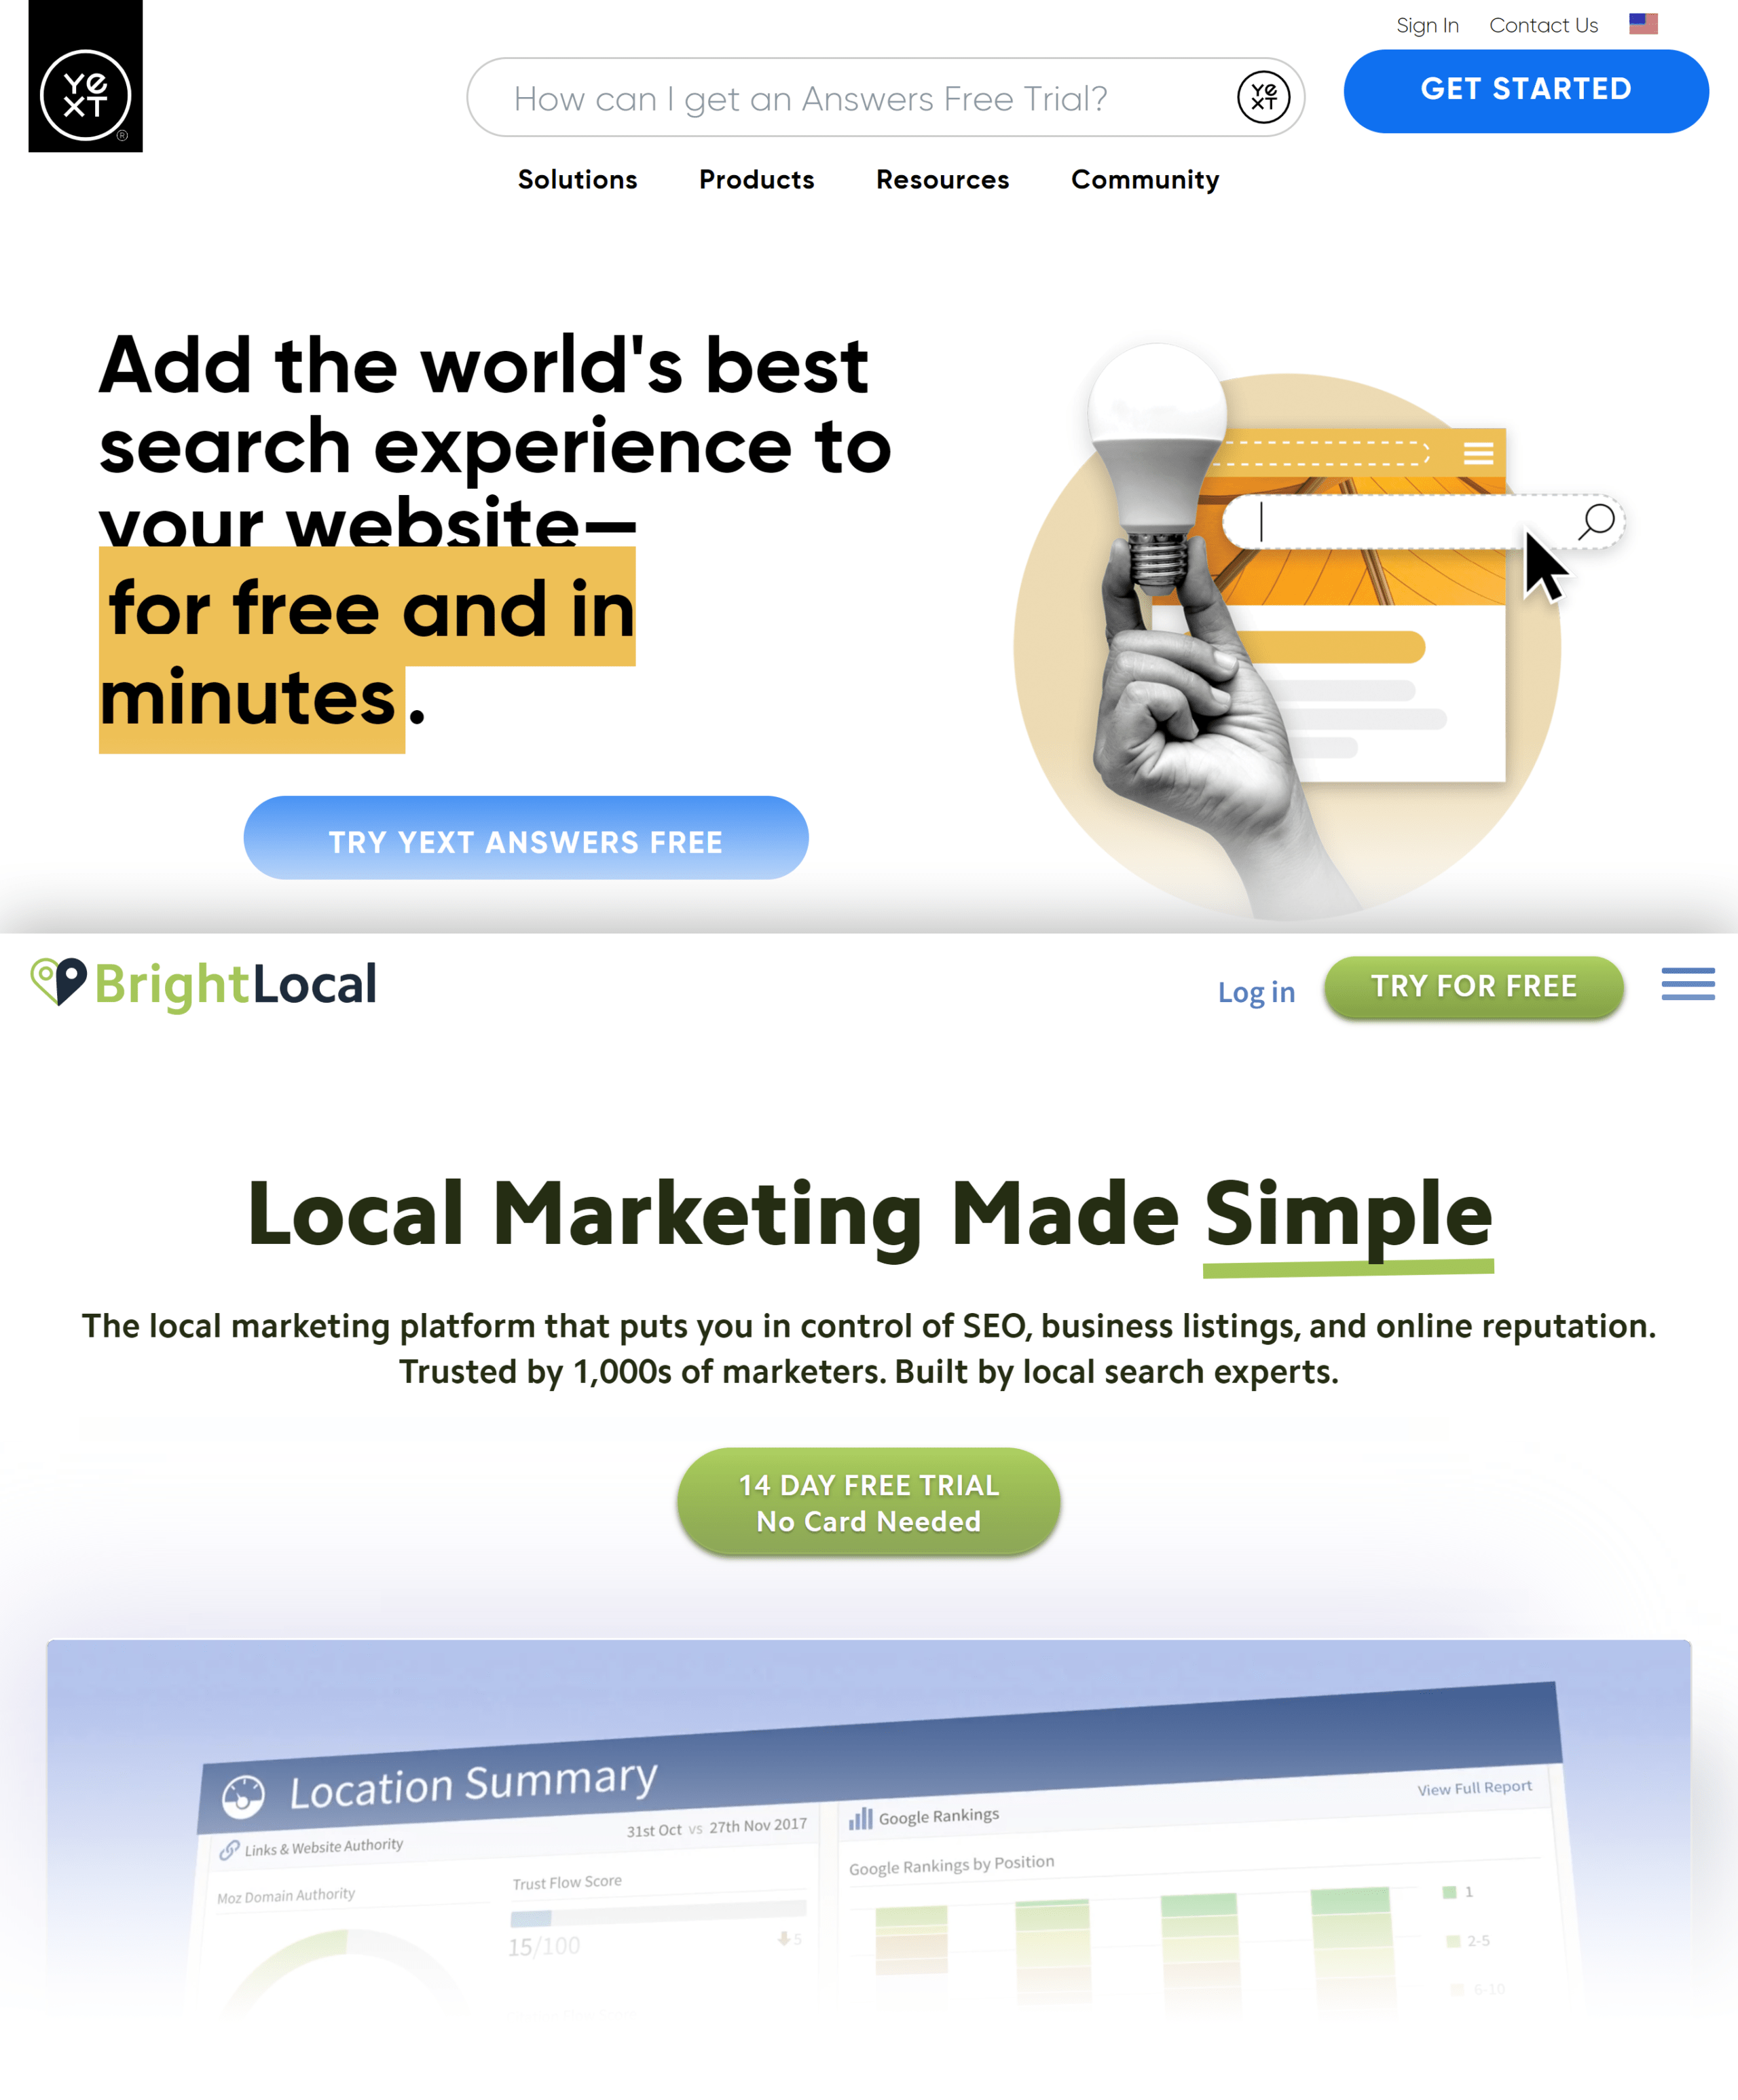 NAP Services – Yext and BrightLocal